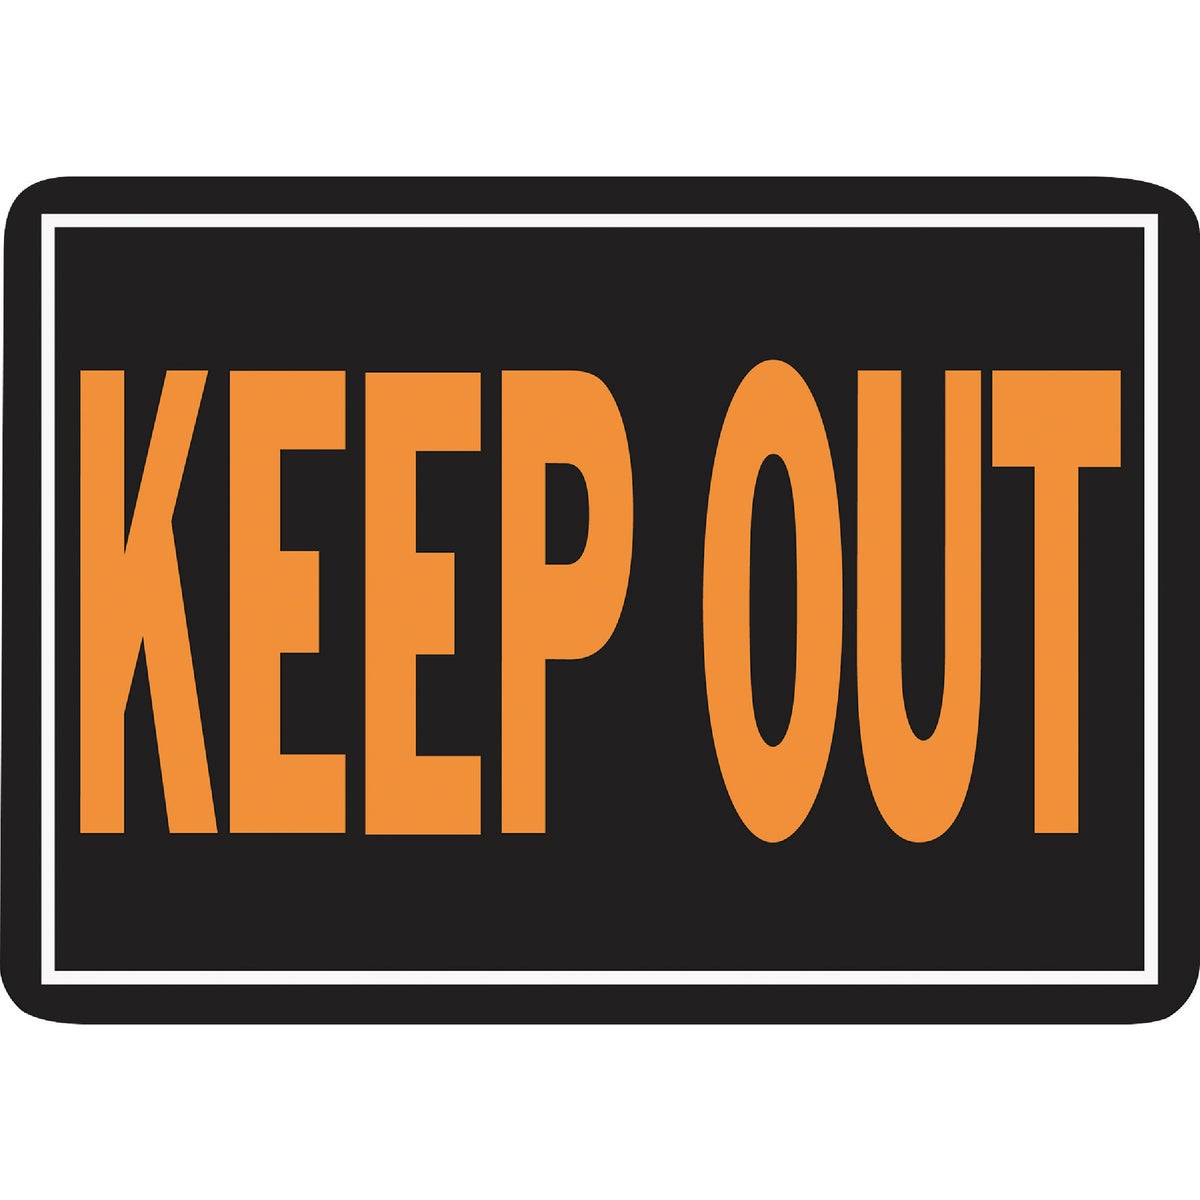 10X14 KEEP OUT SIGN - 807 by Hy Ko Prods Co